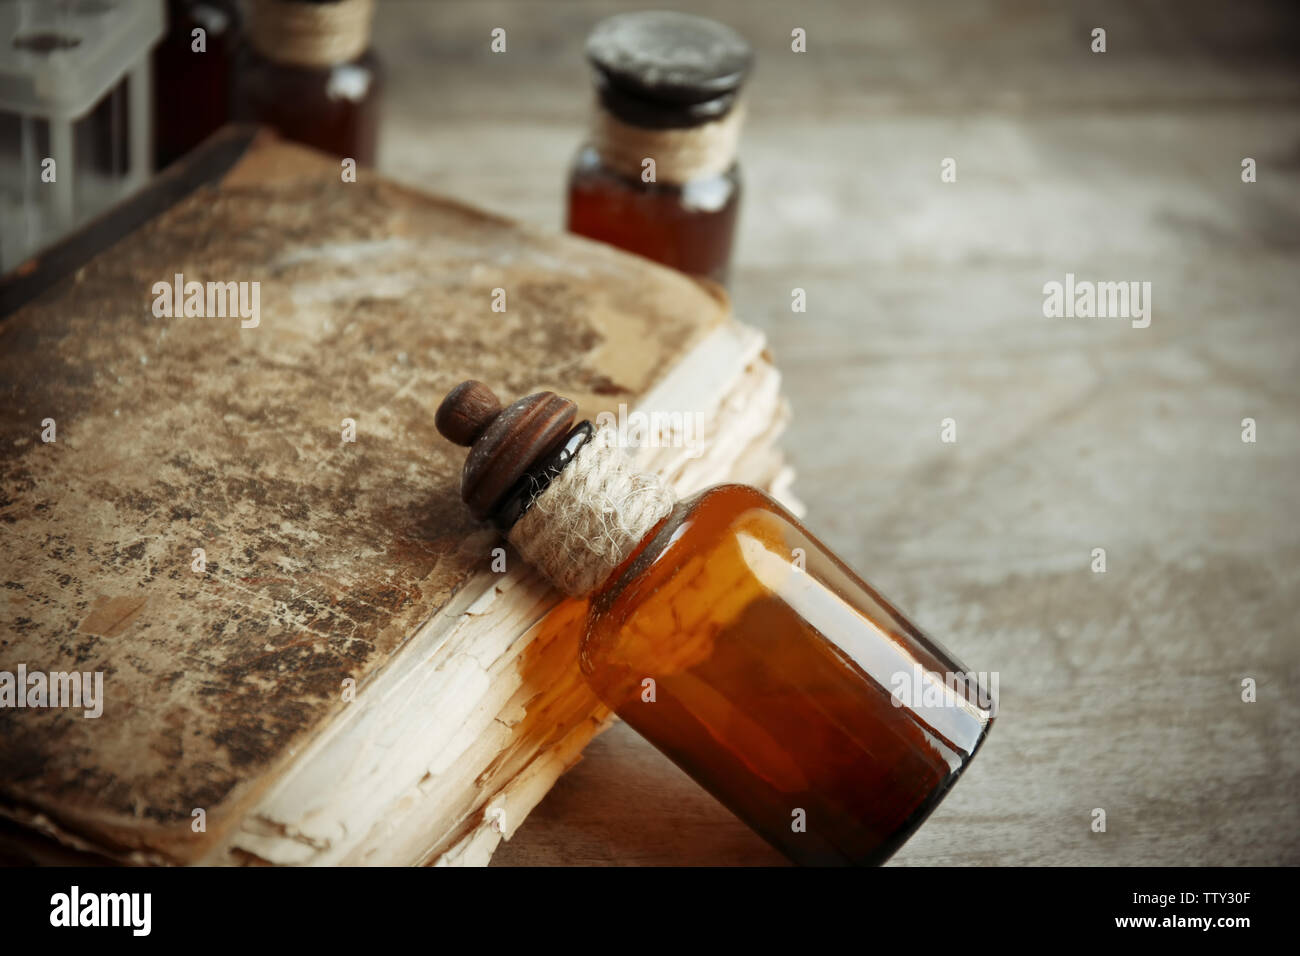 Vintage glass bottle with old book on wooden background, closeup - Stock Image